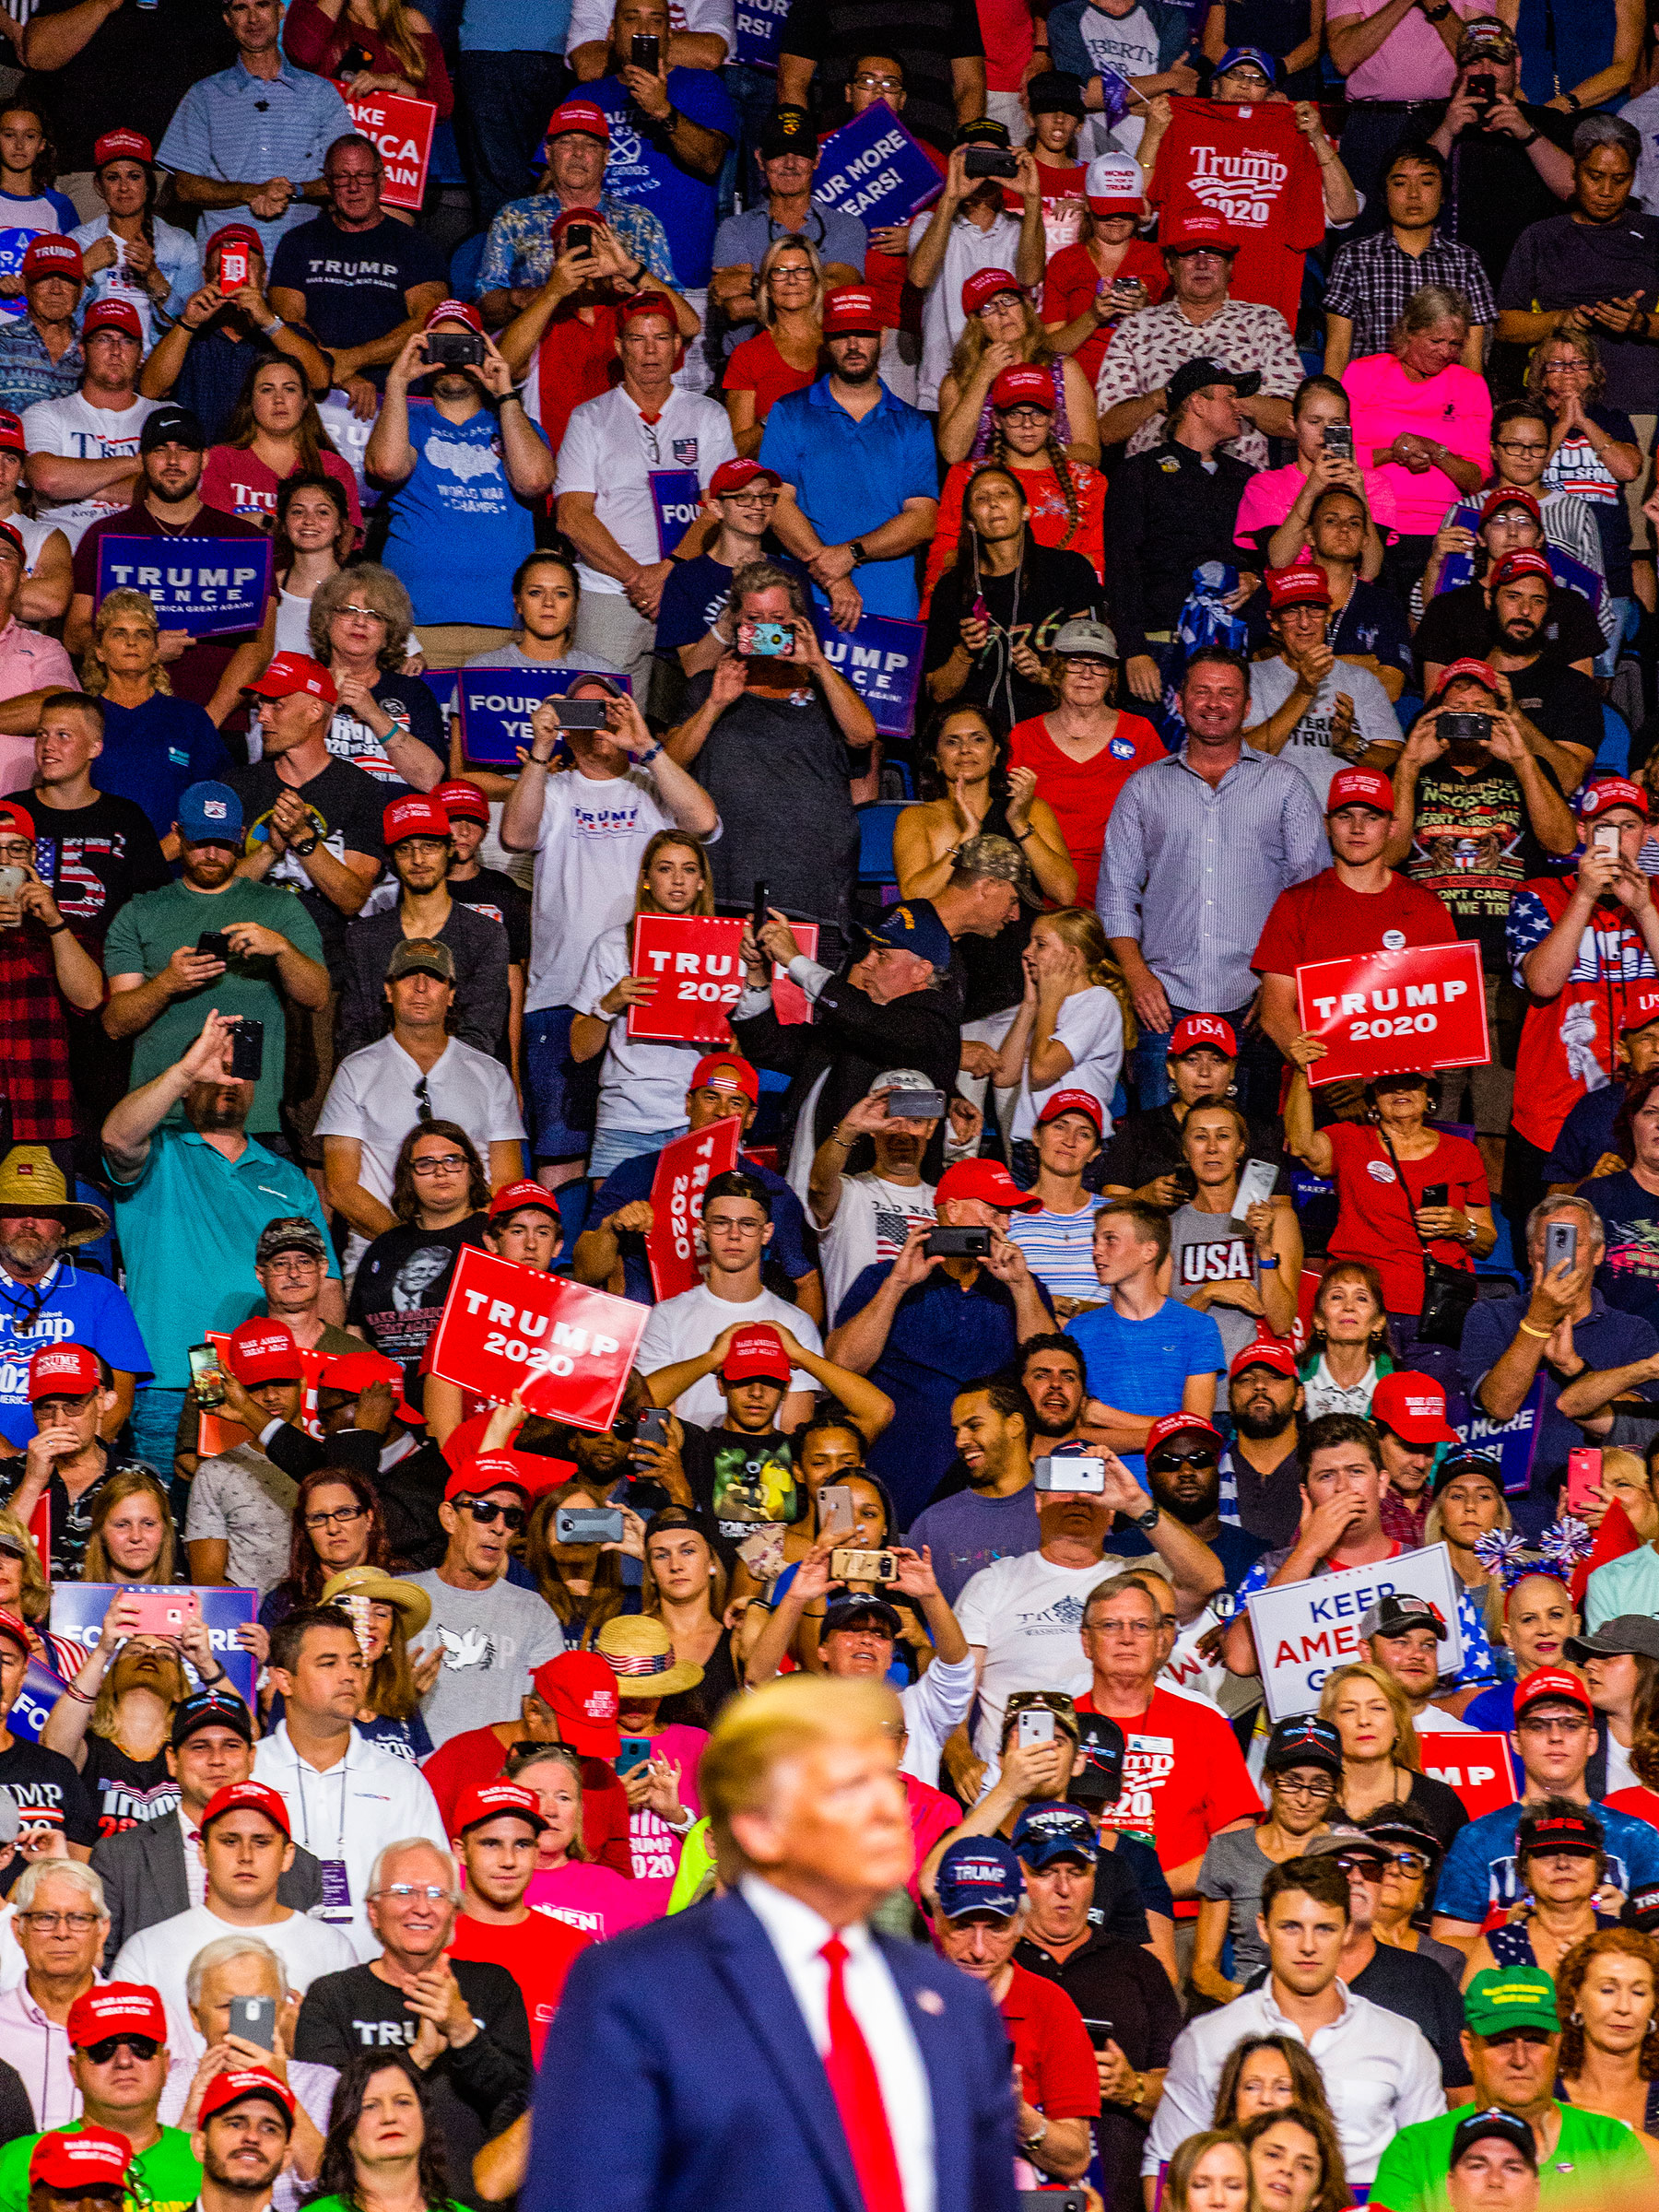 Trump officially kicks off his re-election campaign on June 18 at a rally in Orlando's Amway Center.